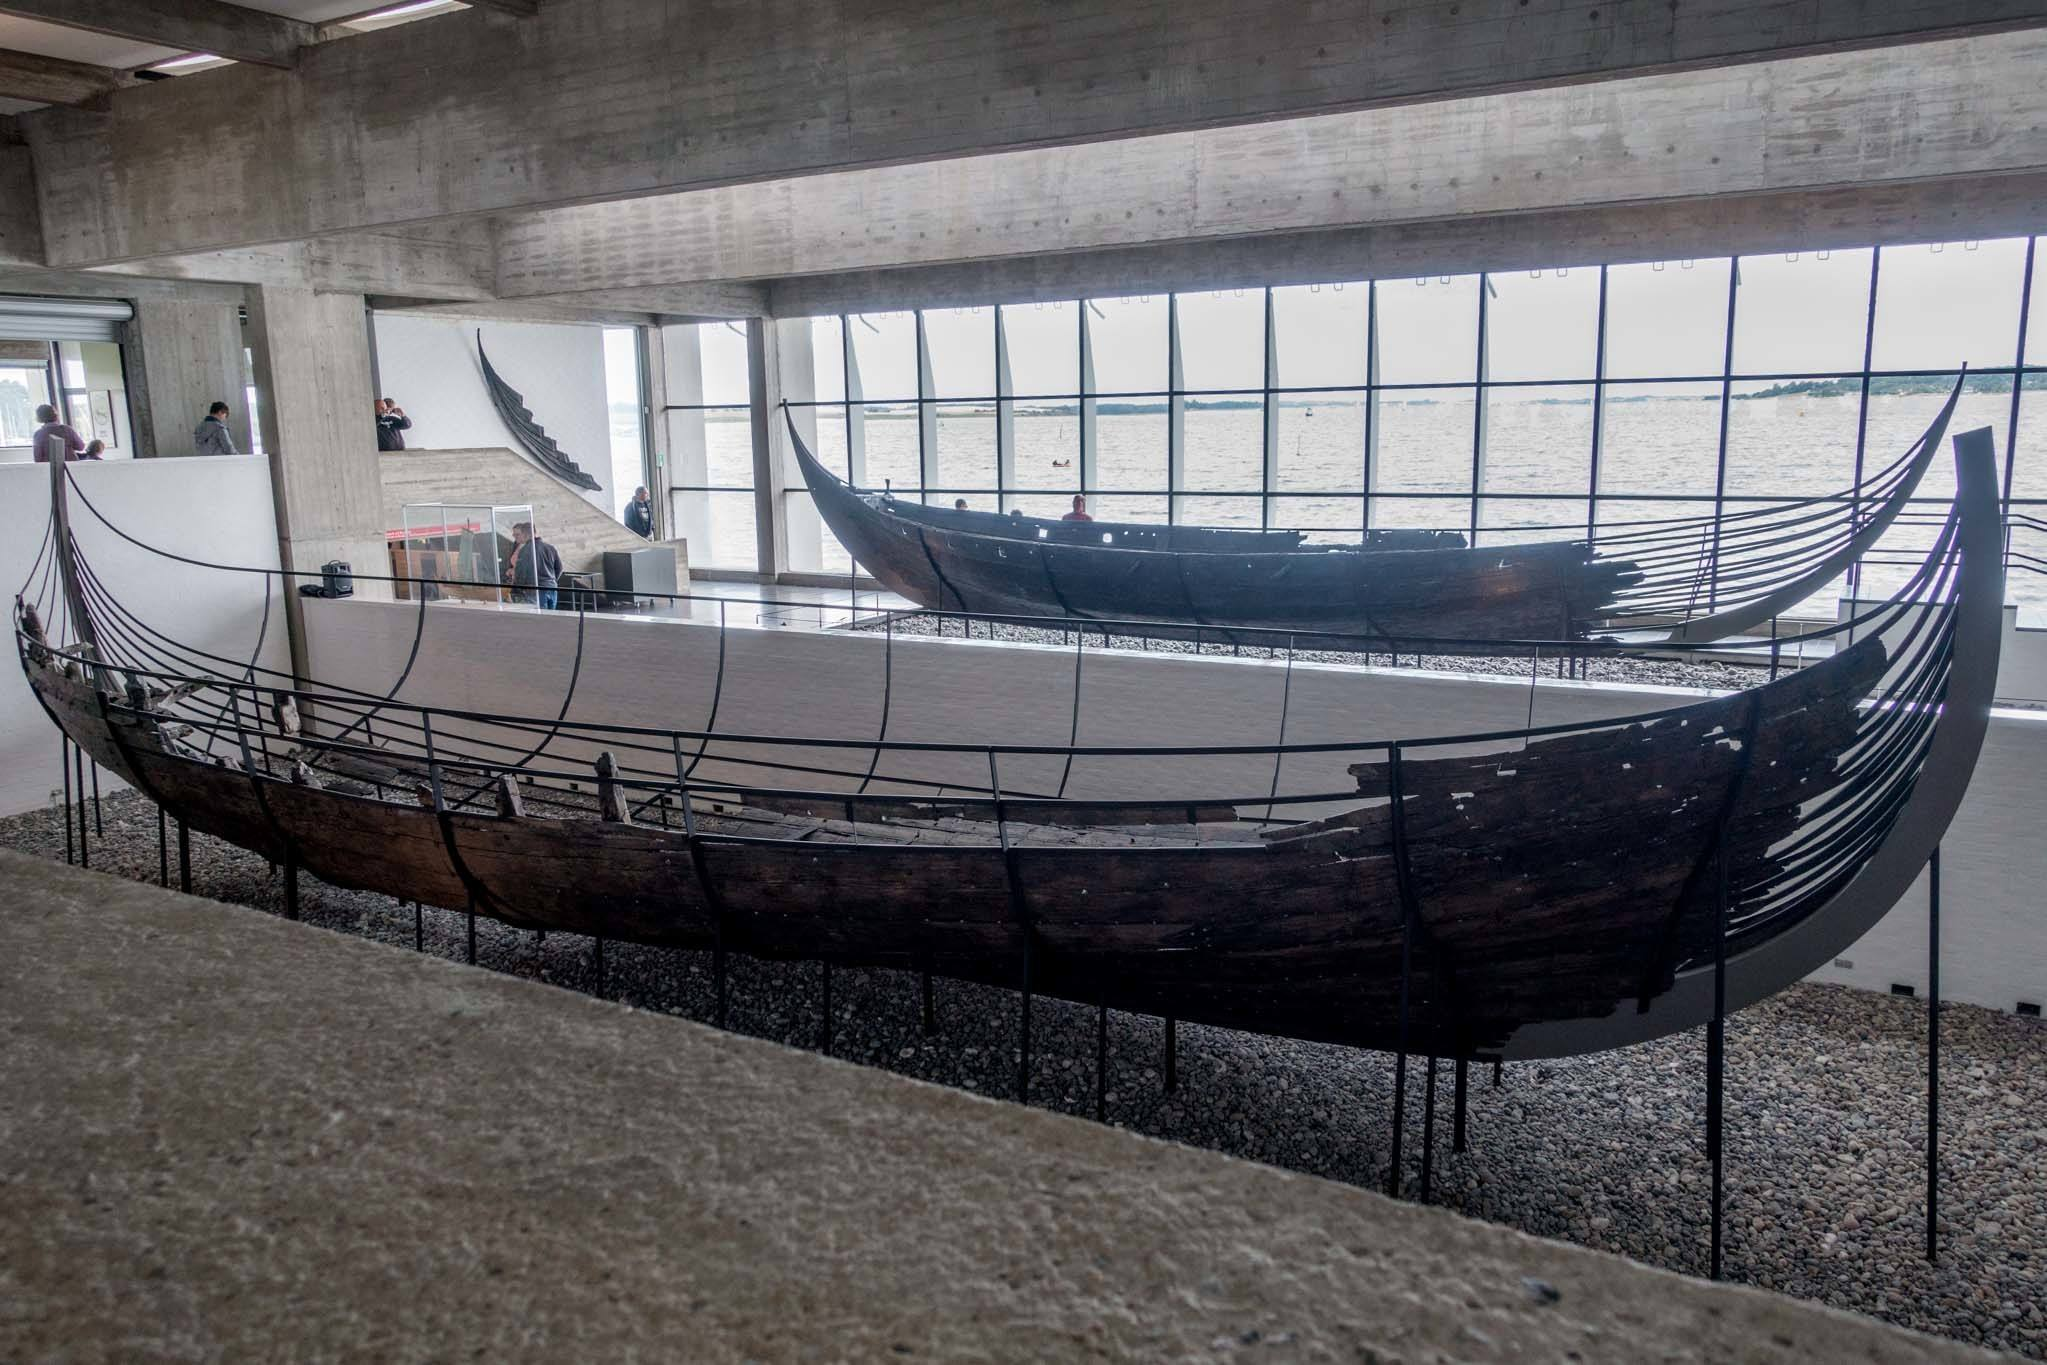 The Viking Ship Museum in Roskilde, Denmark, is positioned along Roskilde fjord (just outside the window)